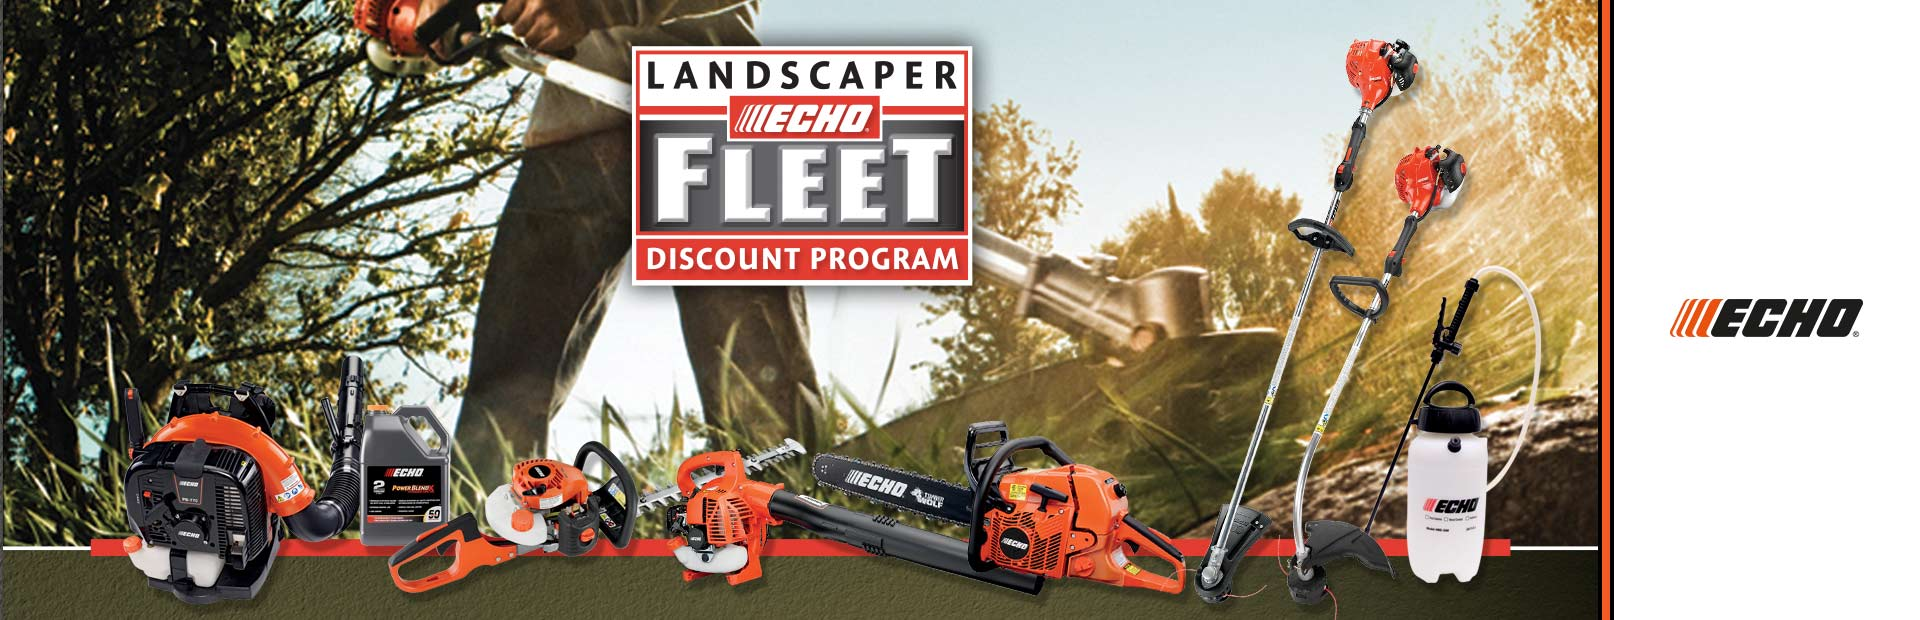 ECHO: Landscaper Fleet Discount Program